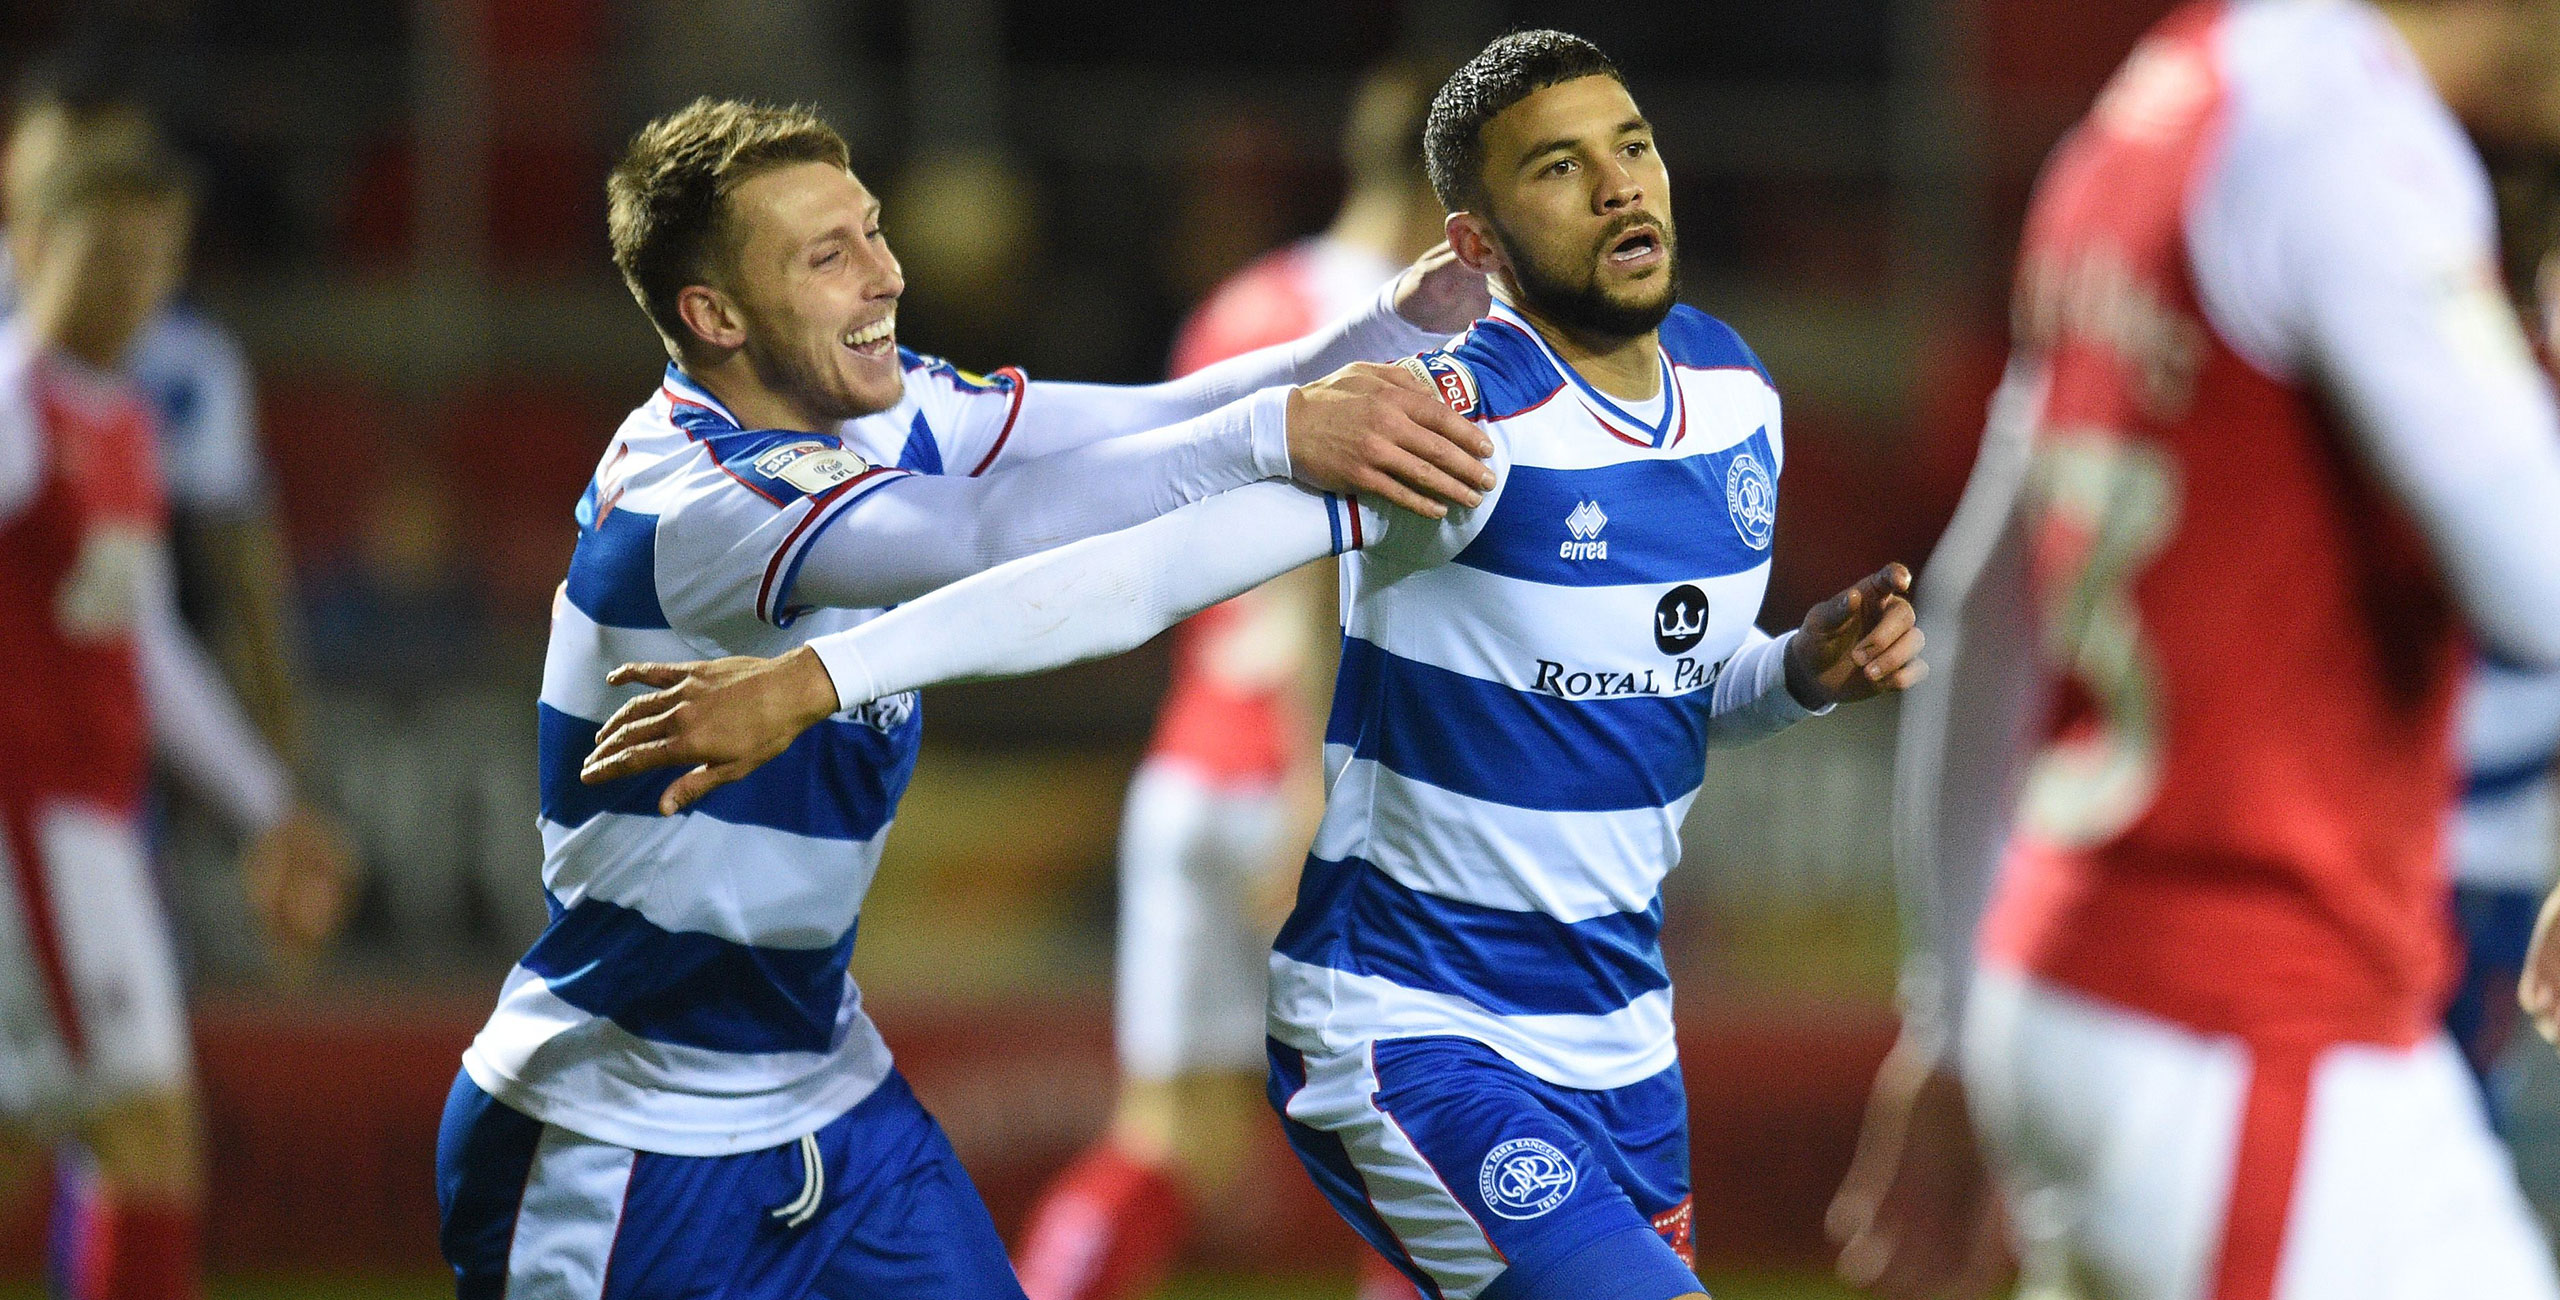 QPR vs Rotherham Betting Tips